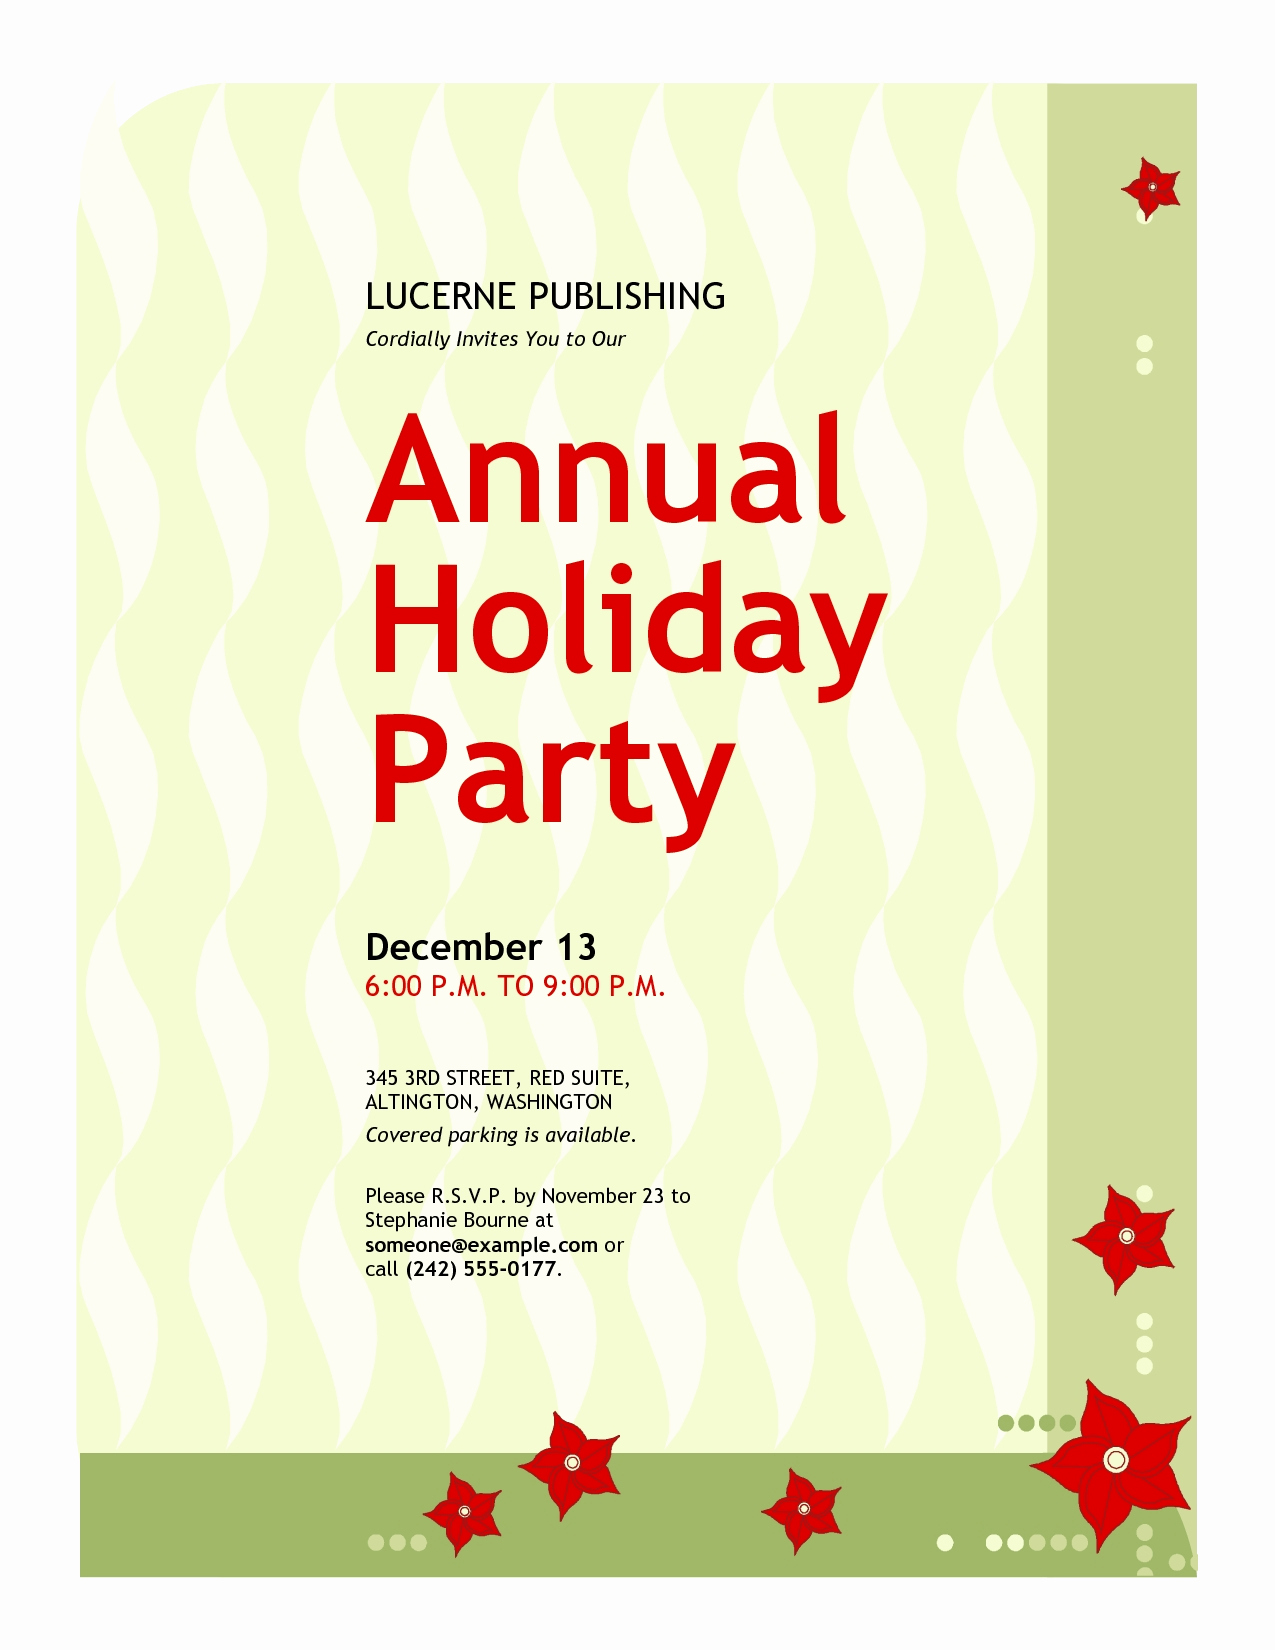 Office Holiday Party Invitation Wording New Christmas Fice Party Invitation Wording Cobypic